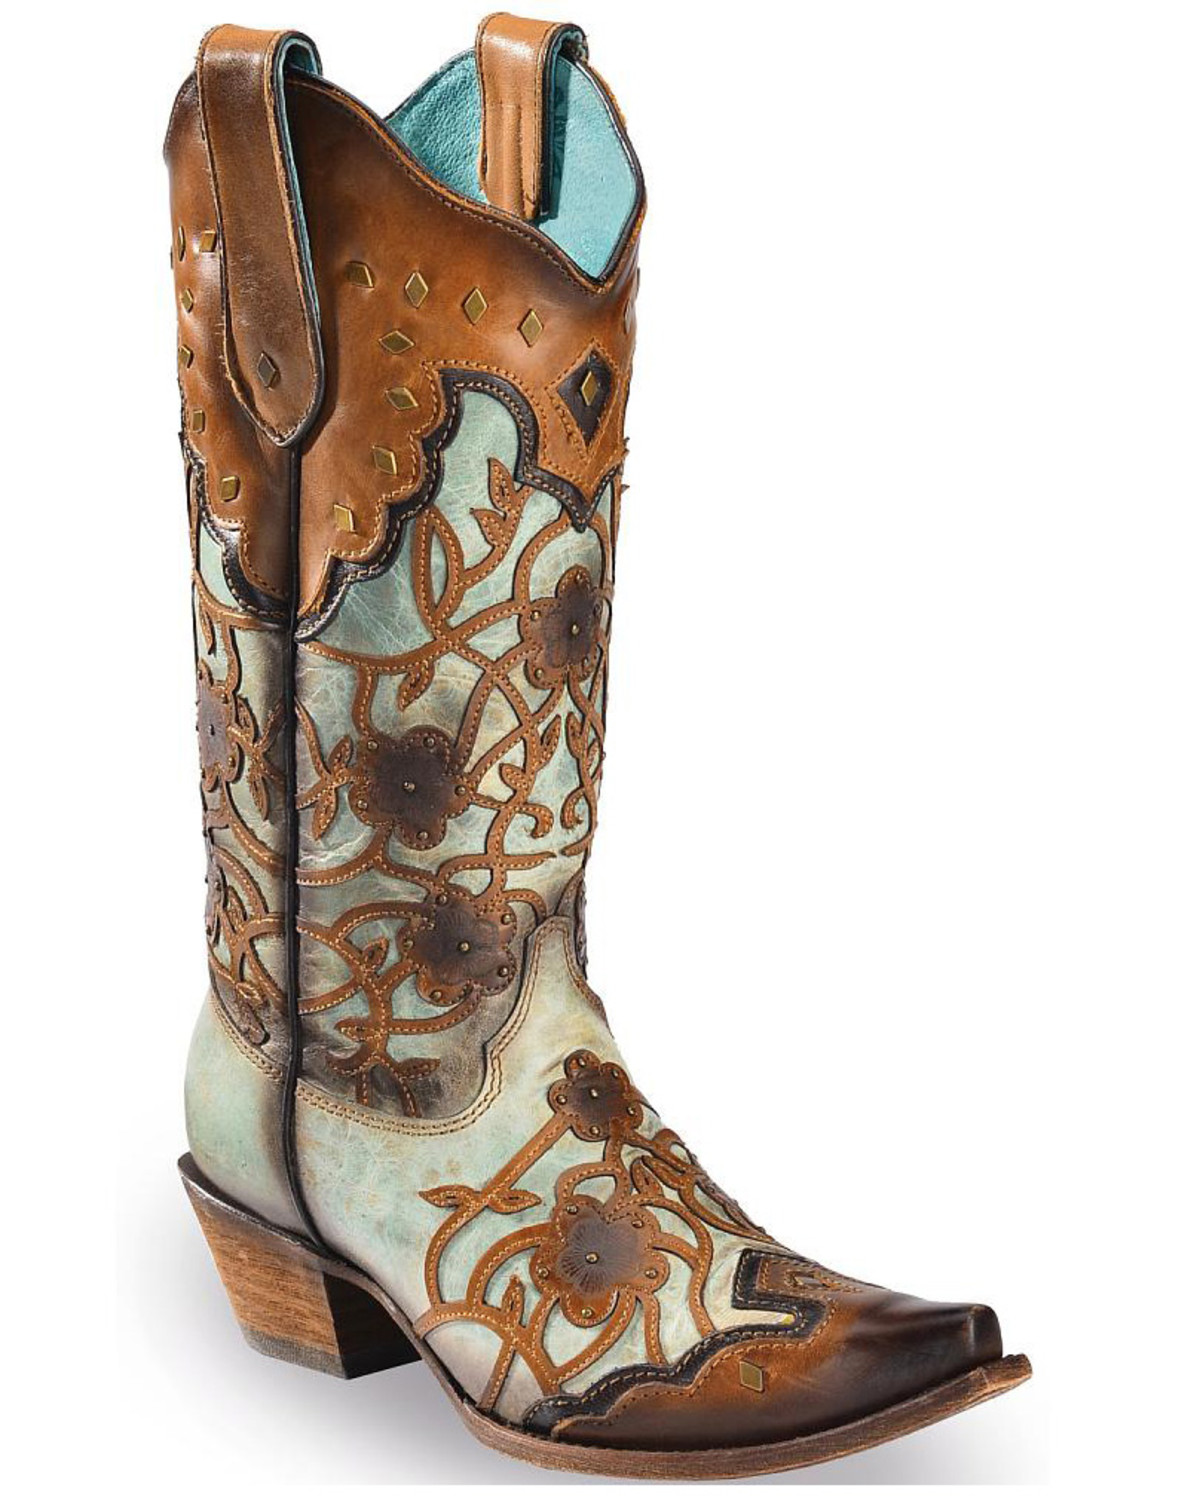 Cavender's western boots for girls and for boys include a range of styles from traditional toe to snip toe, round toe, square toe, and roper boots.